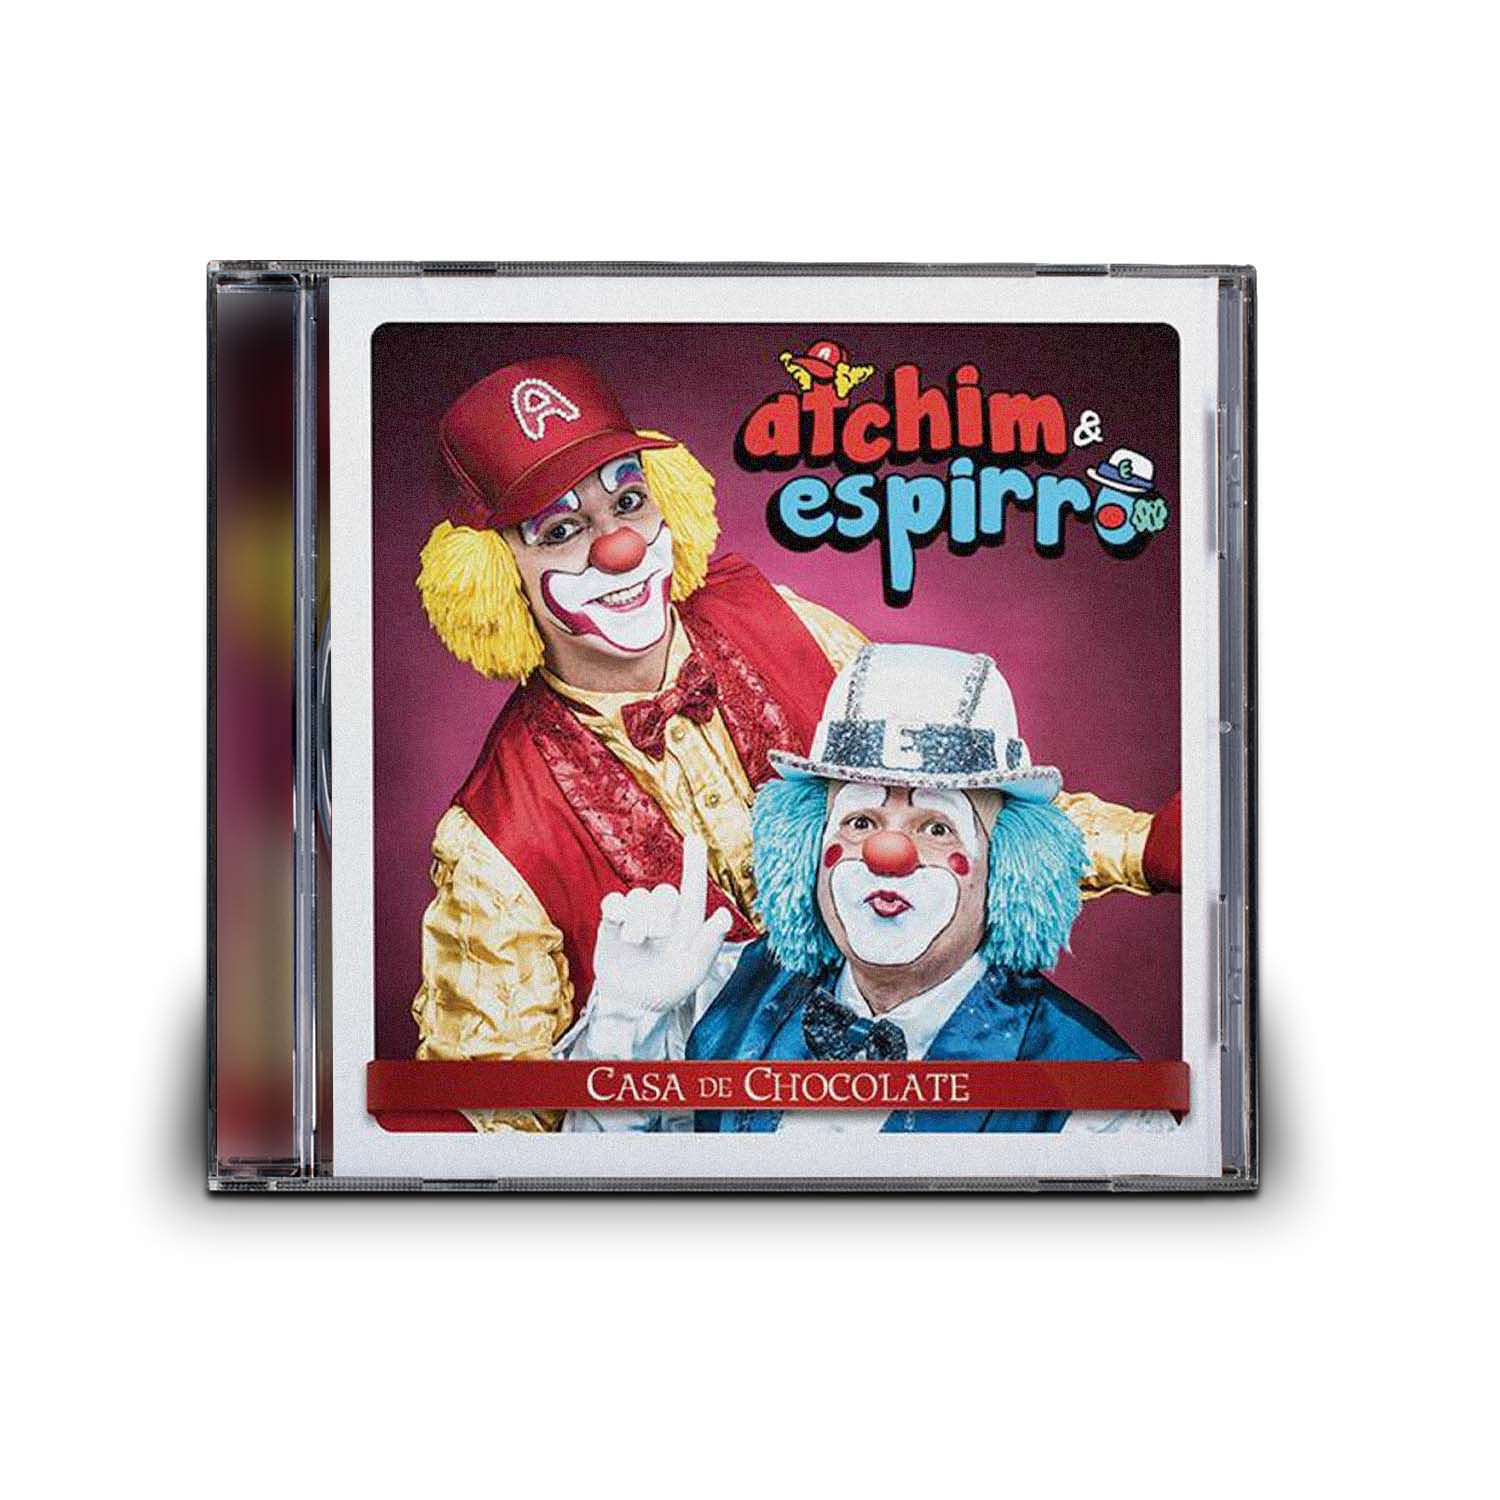 CD ATCHIM & ESPIRRO - CASA DE CHOCOLATE